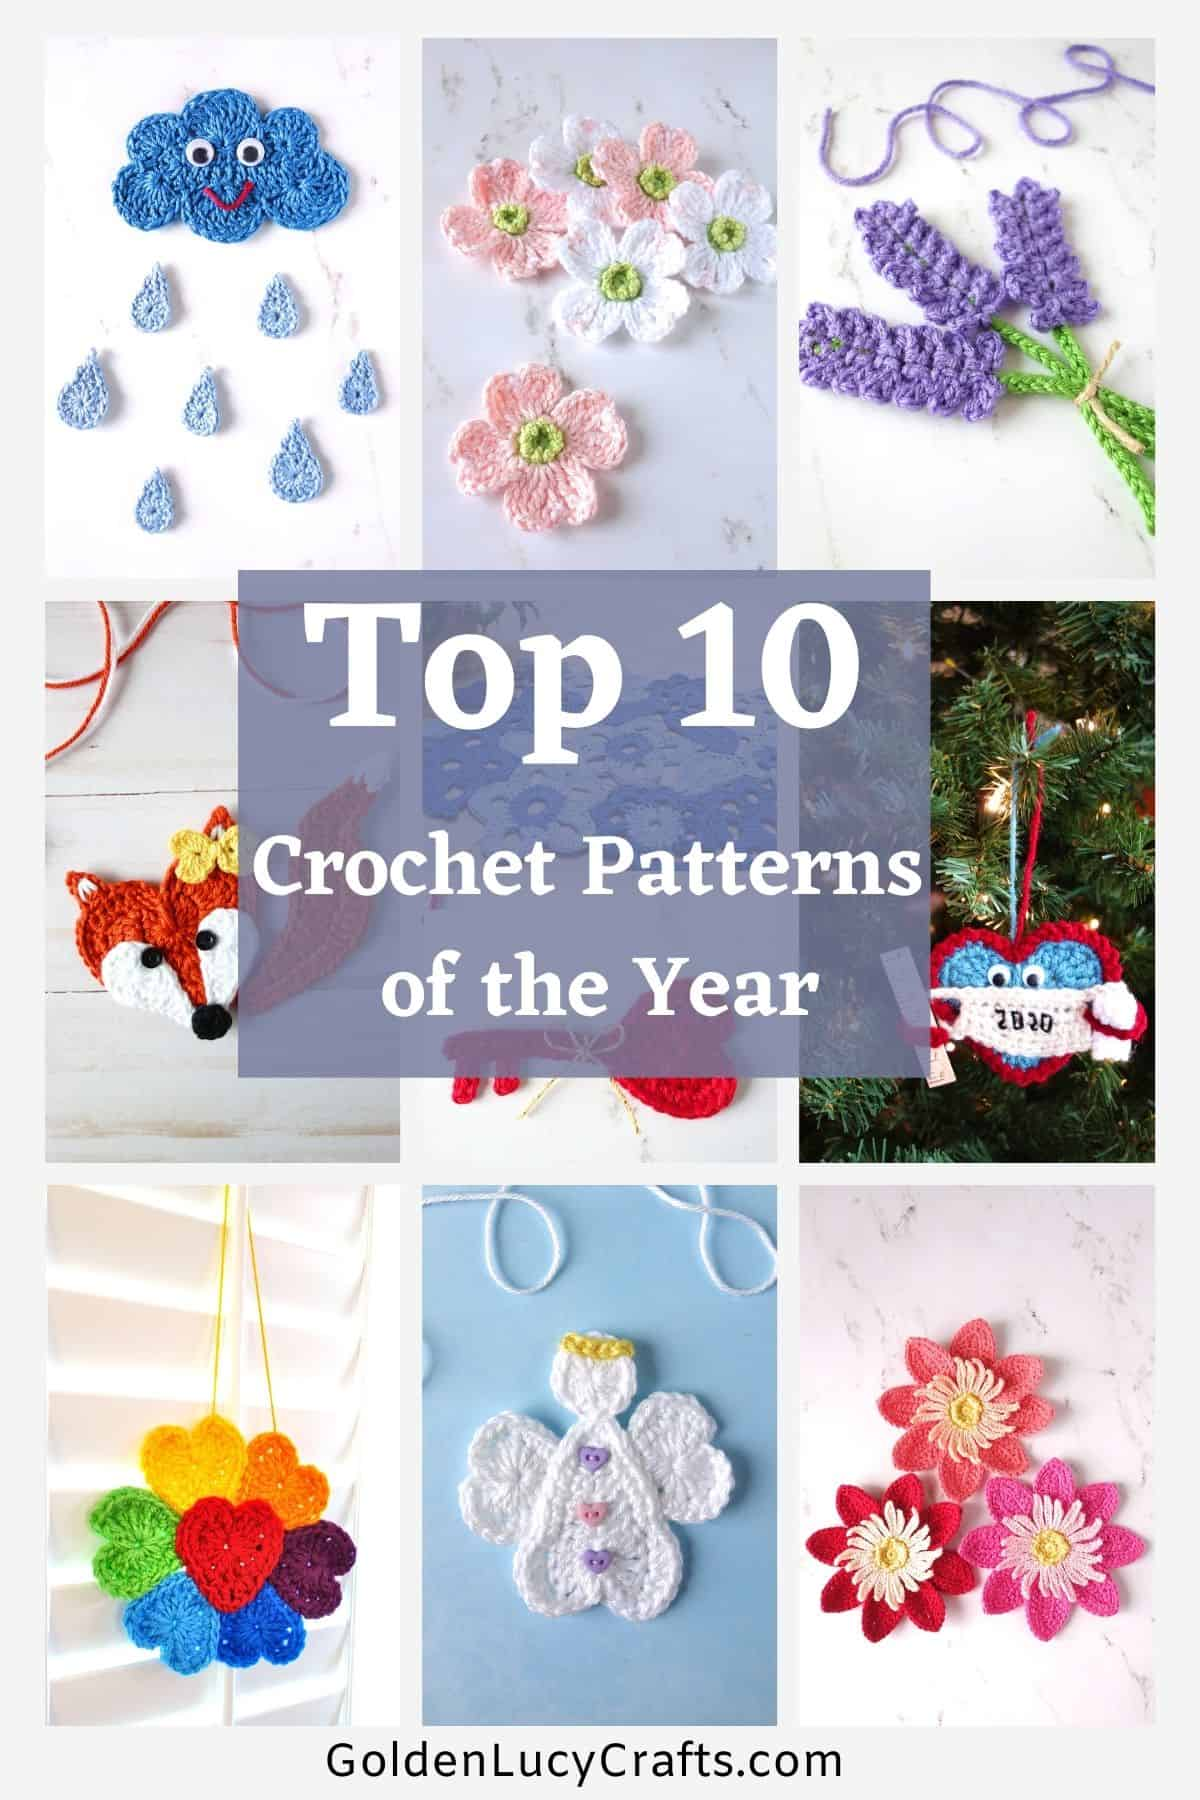 Picture collage - top 10 crochet patterns of the year.